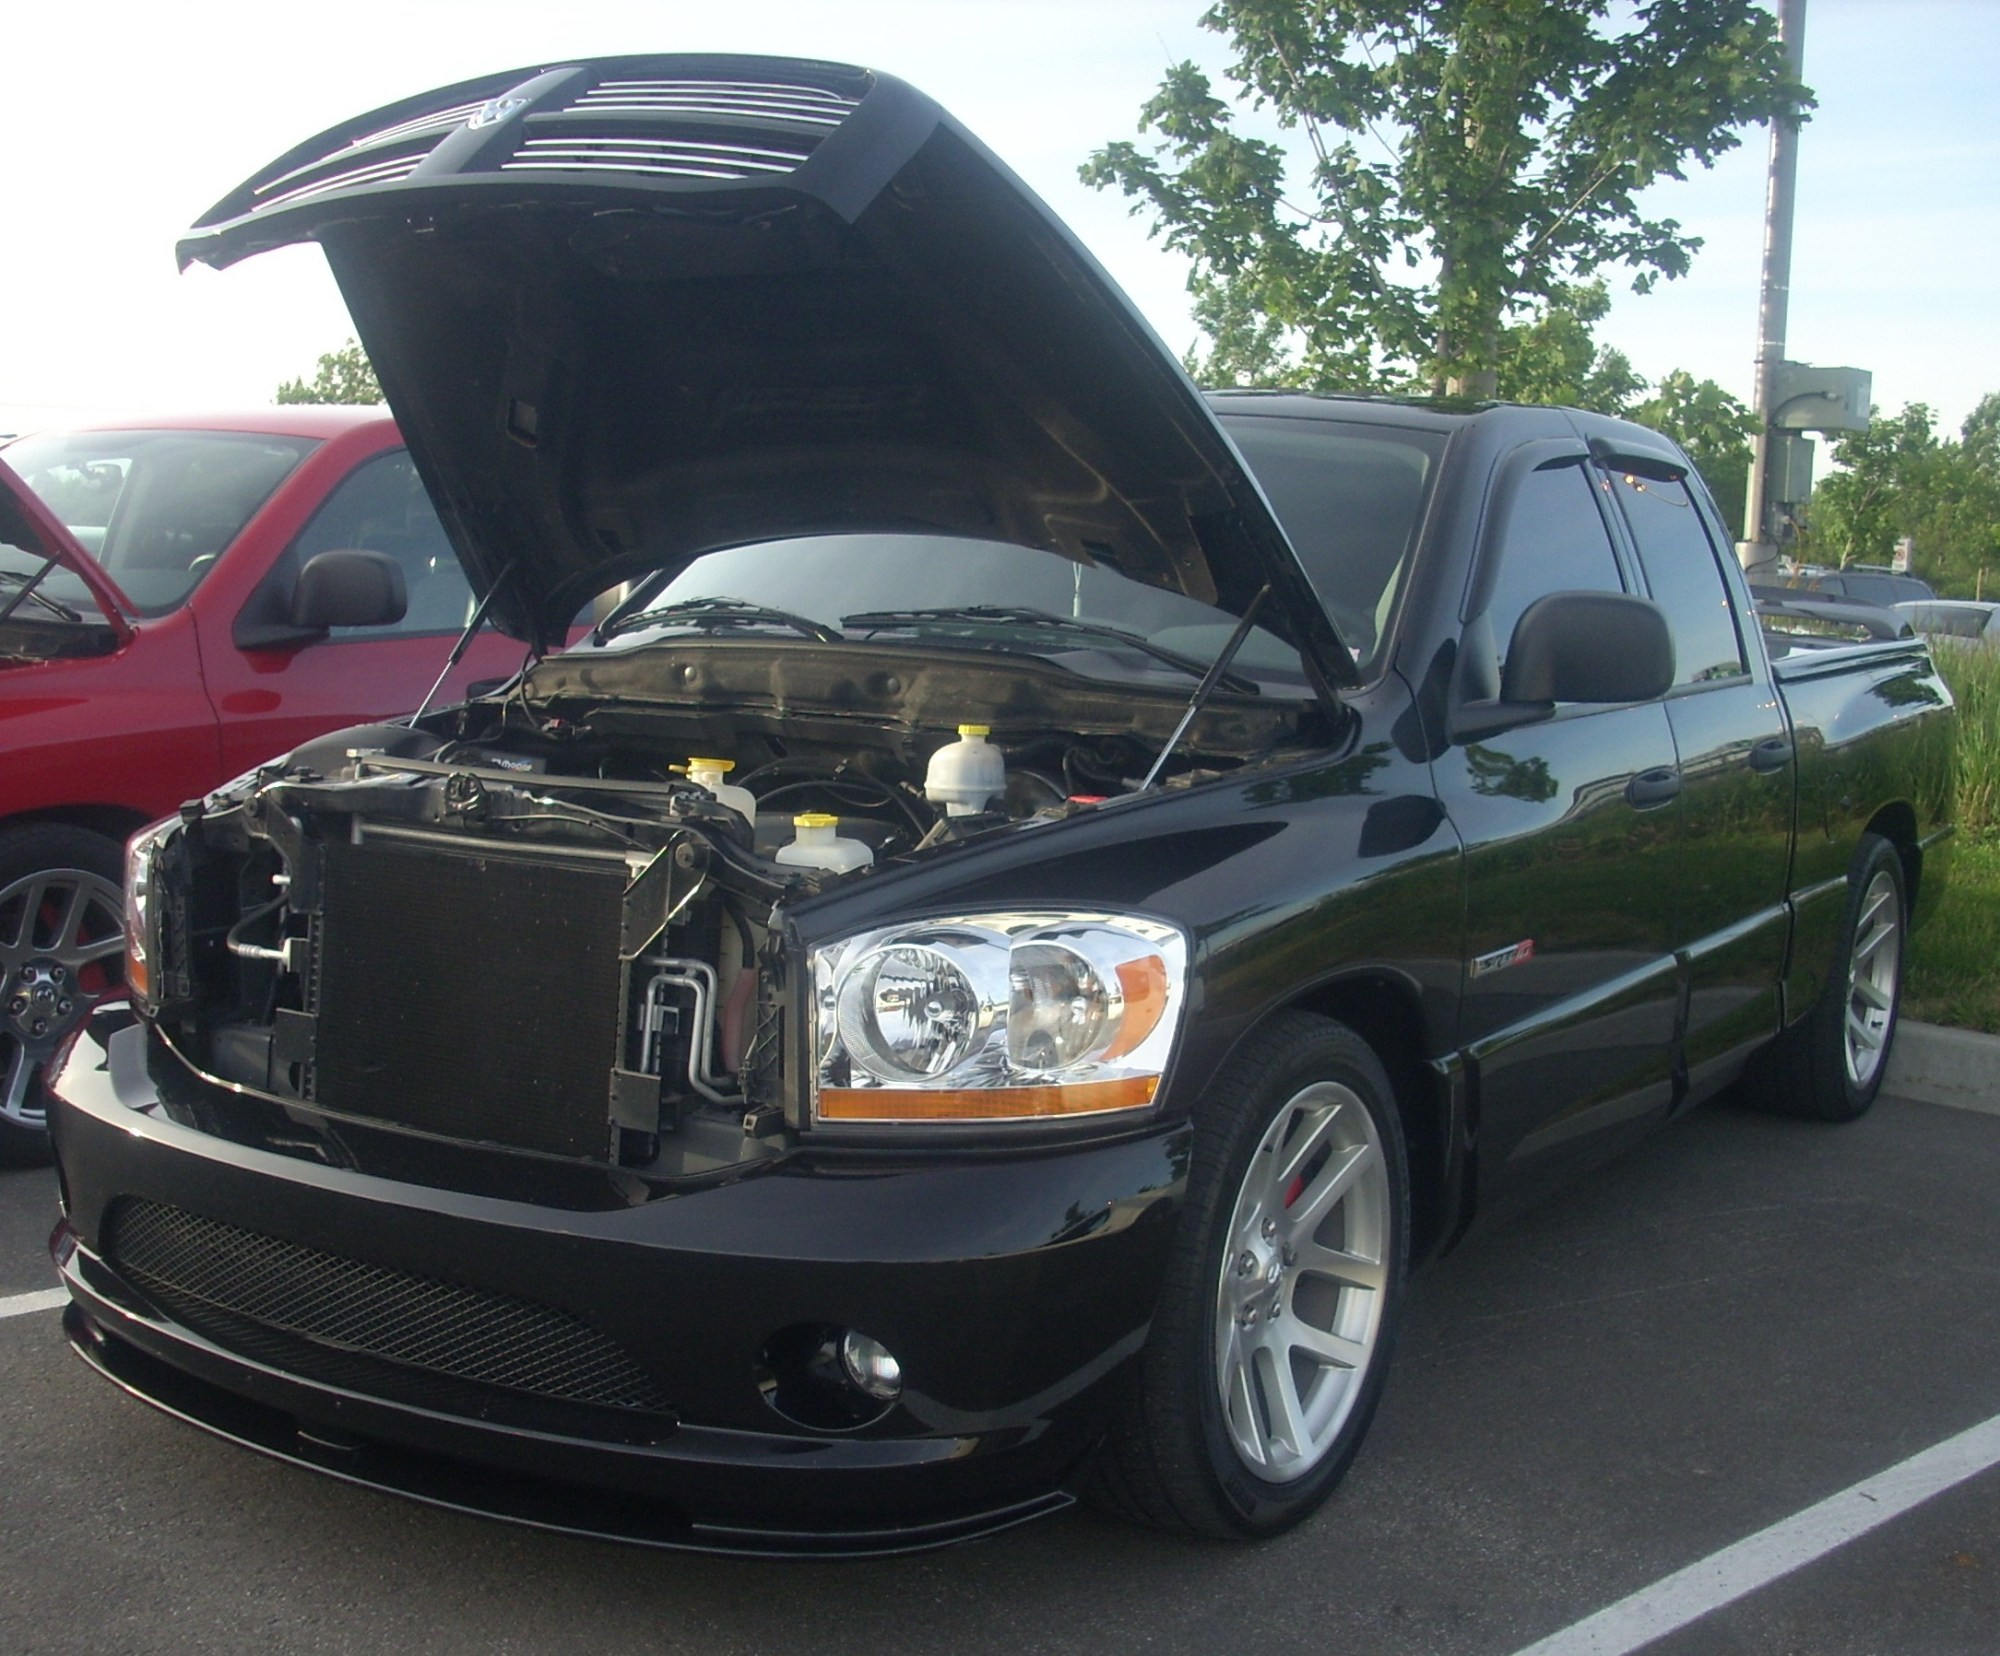 hight resolution of 2006 dodge ram srt 10 crew cab with open hood